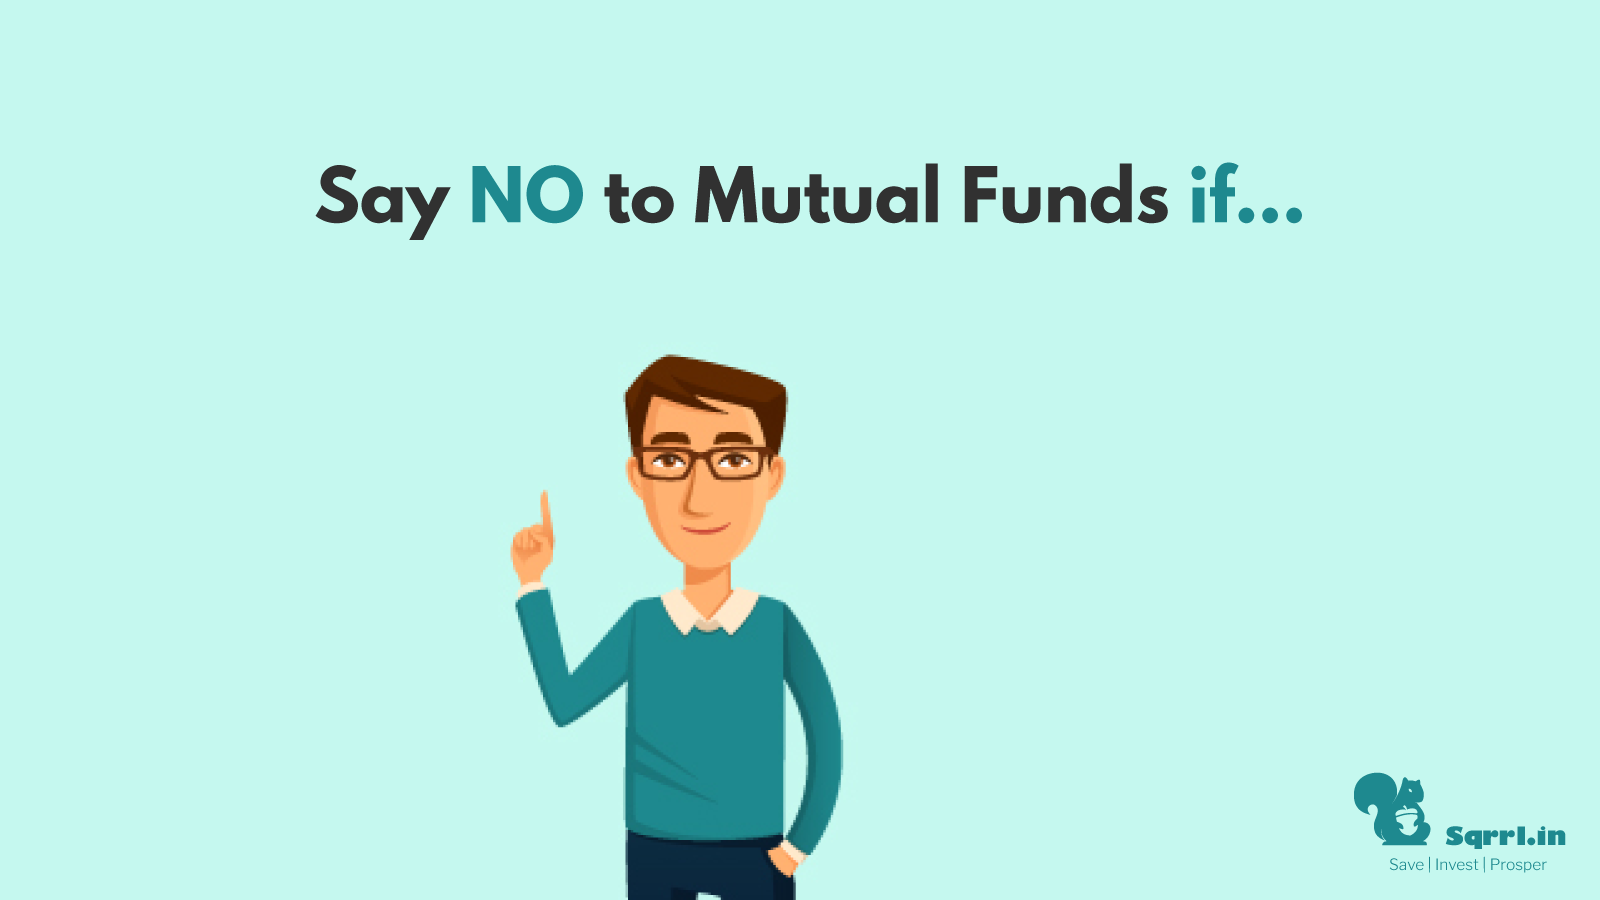 You shouldn't invest in mutual funds